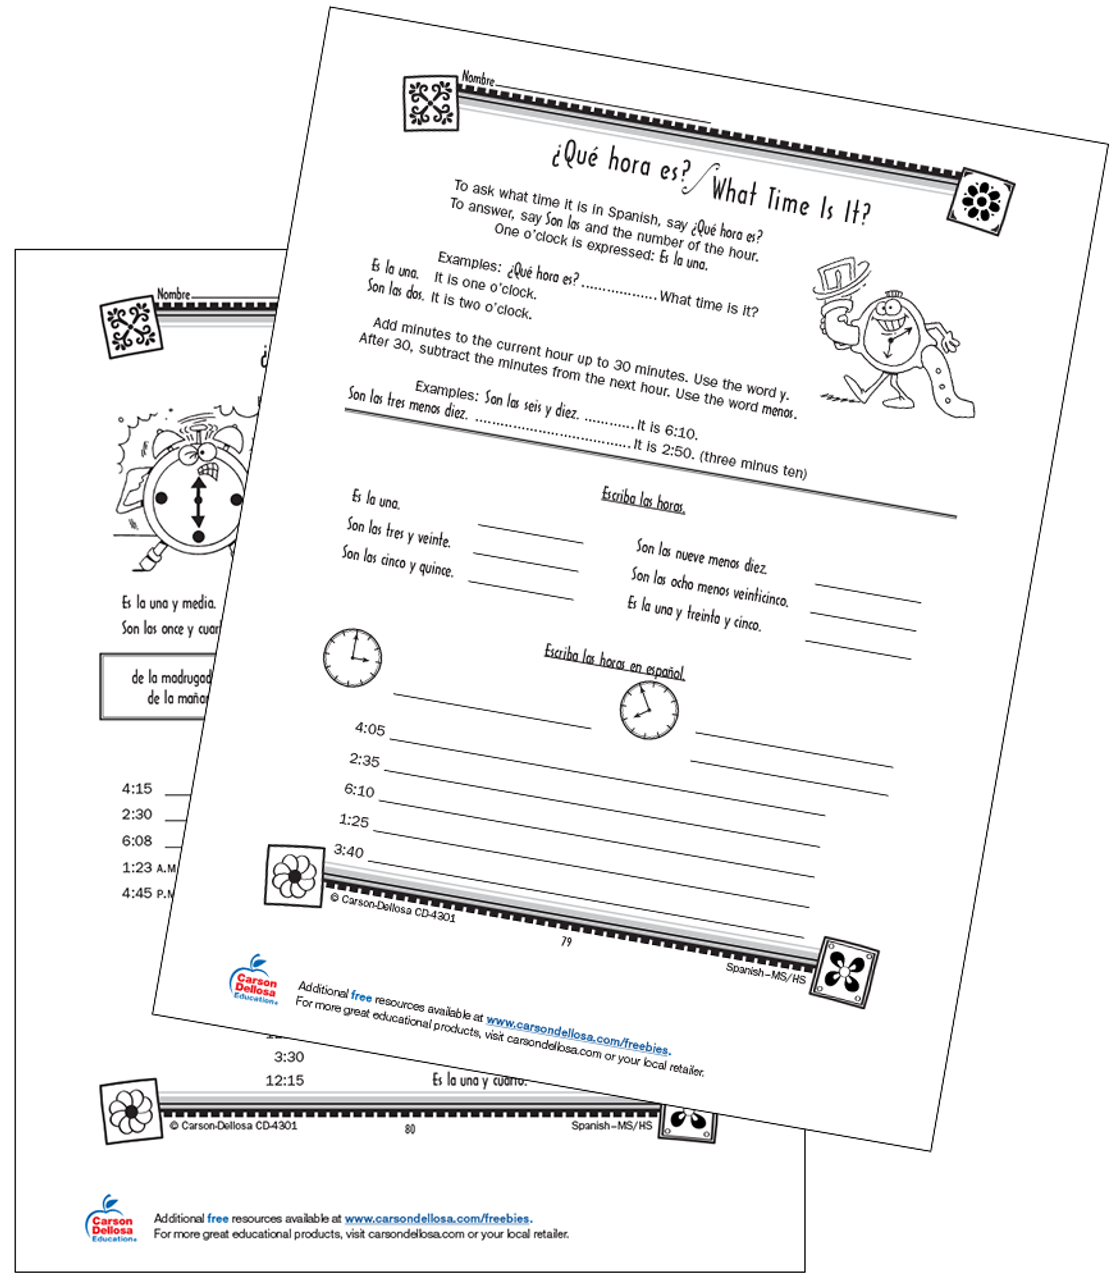 - Time Vocabulary And Expressions Grade 6-12 Spanish Free Printable